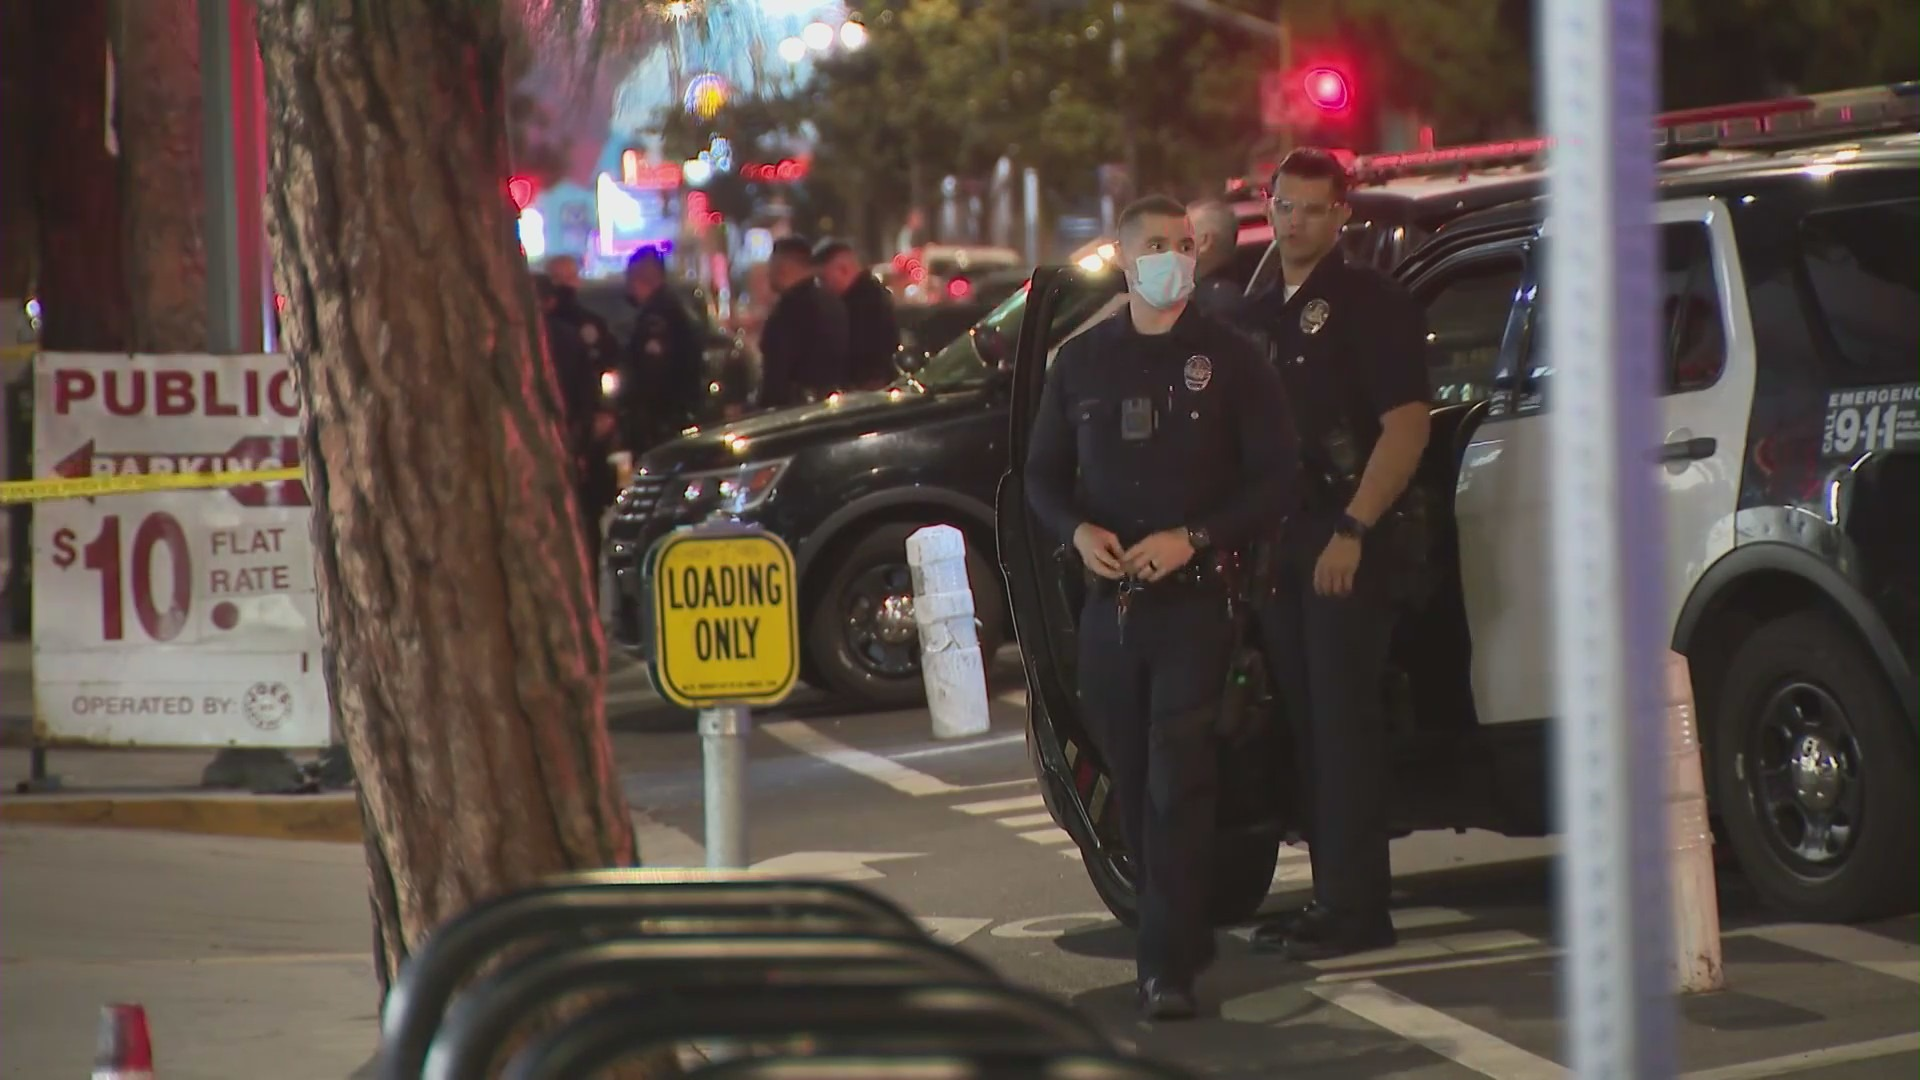 Police are investigating after multiple people were struck by gunfire in downtown L.A. on Oct. 23, 2021. (KTLA)